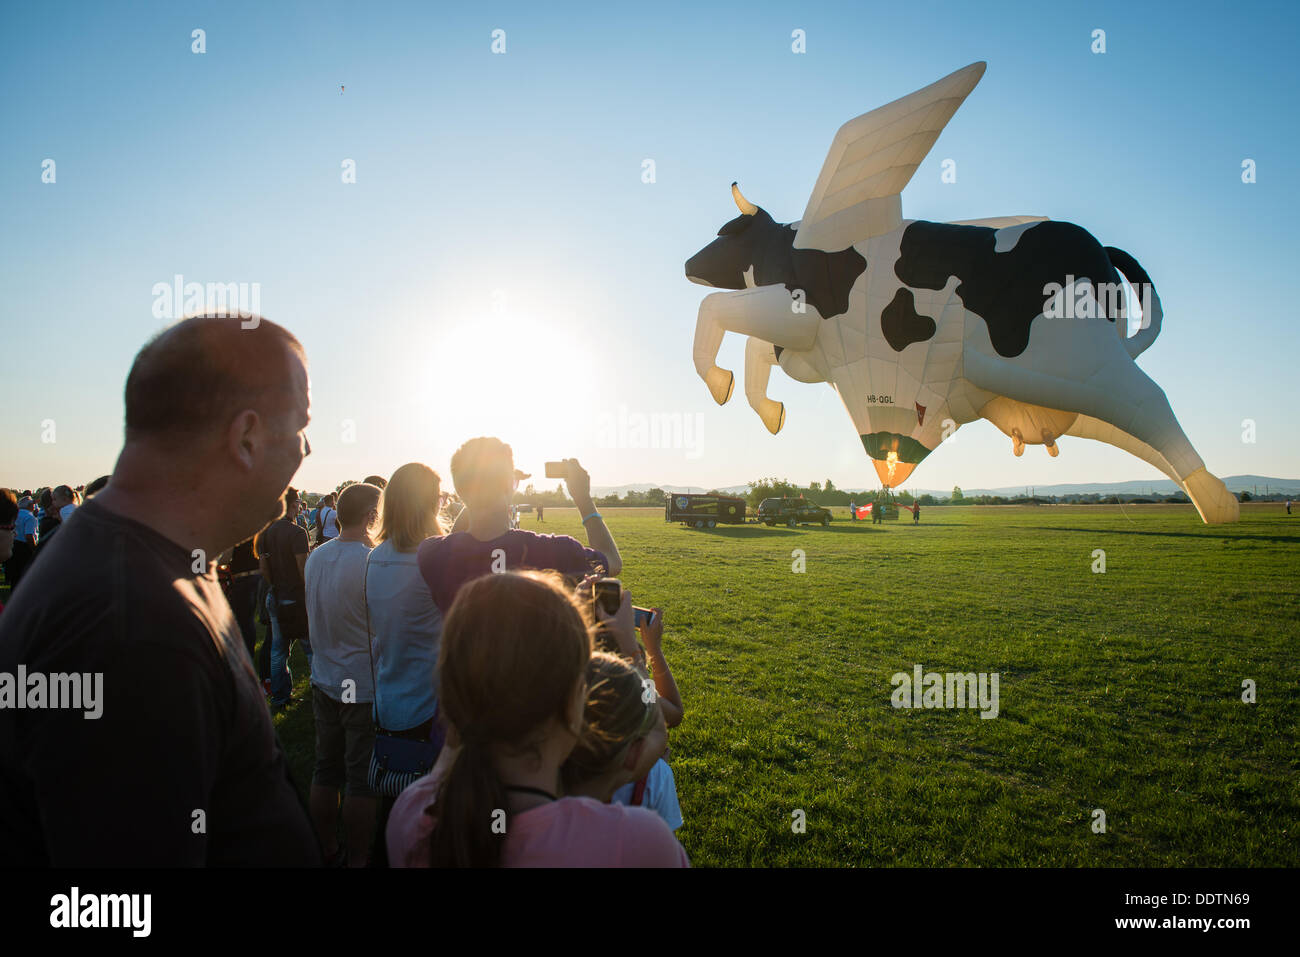 Piestany, Slovakia. 6th September 2013. Crowds watch as Swiss crew blast the flame into cow shape balloon during 1st Balloon megafiesta on September 6th, 2013 in Piestany, Slovakia Credit:  Lubos Paukeje/Alamy Live News Stock Photo